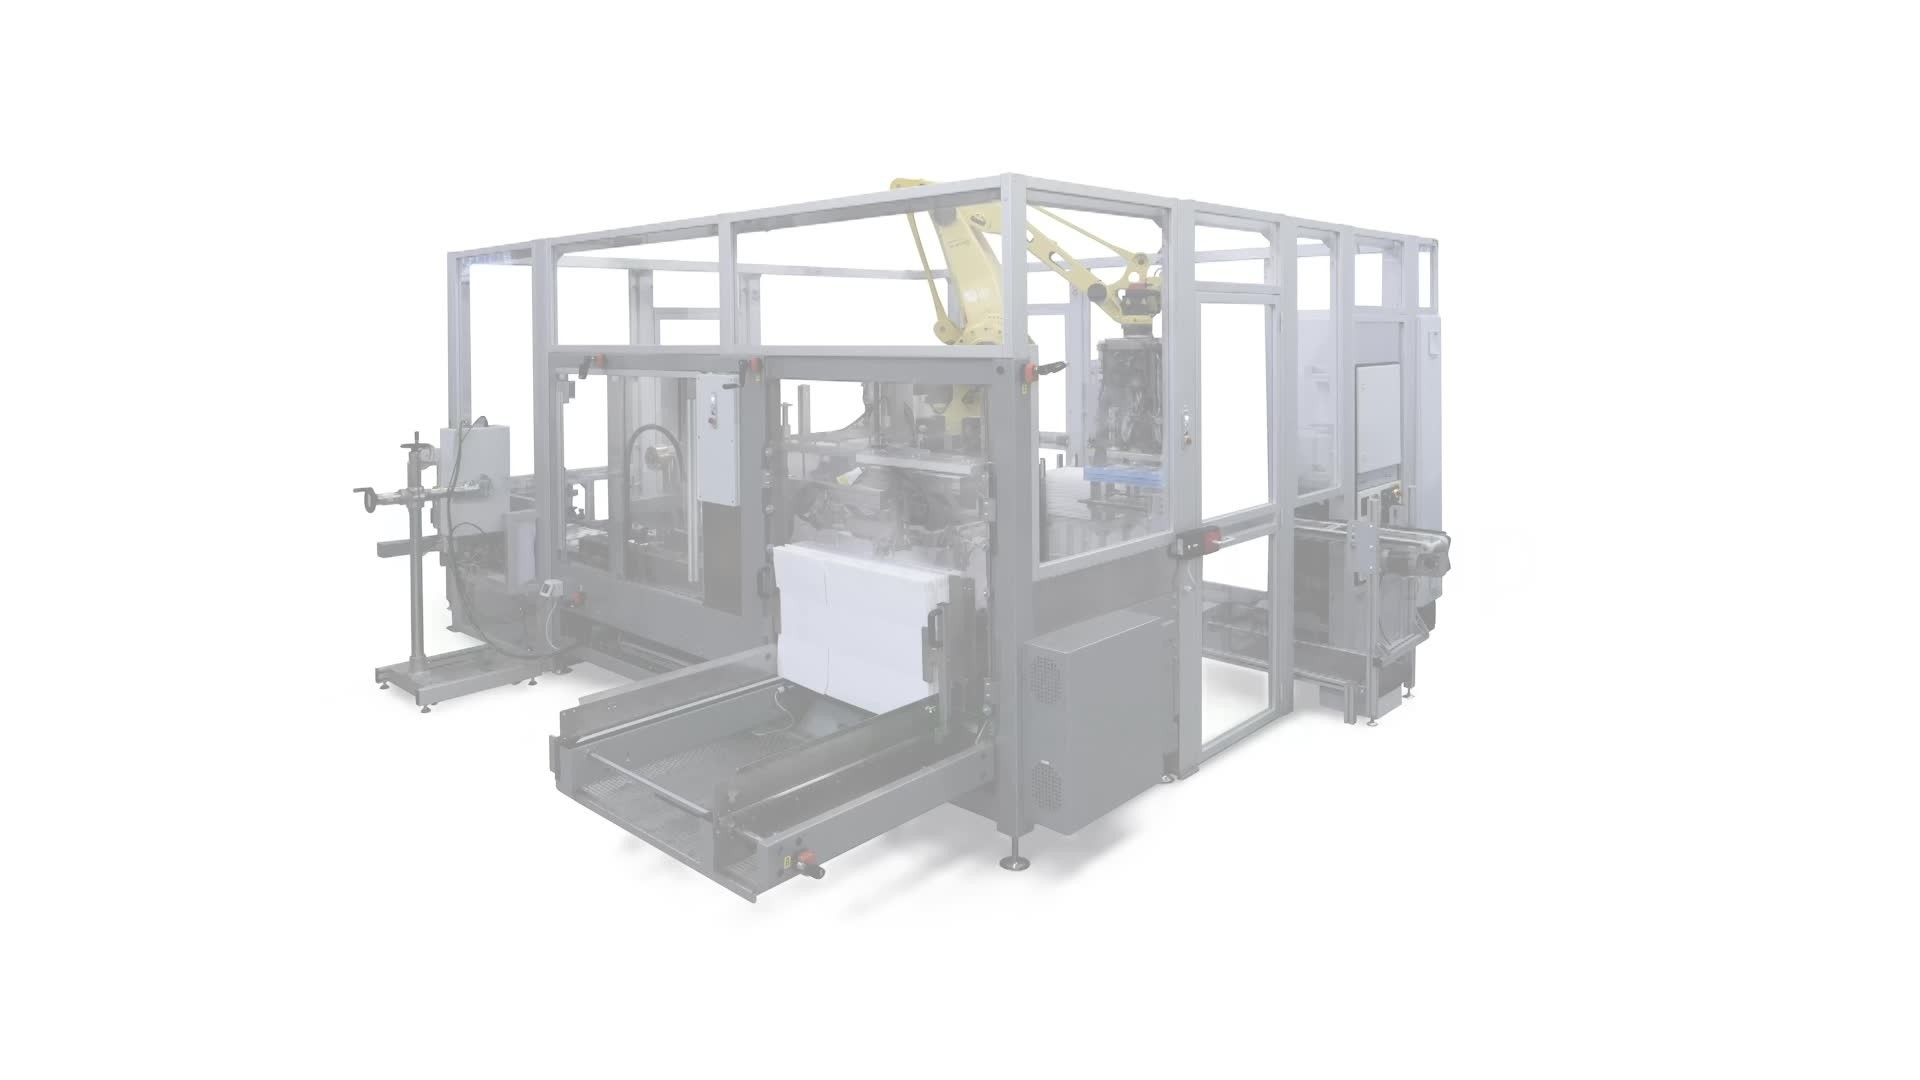 Highly automated packaging and palletizing line